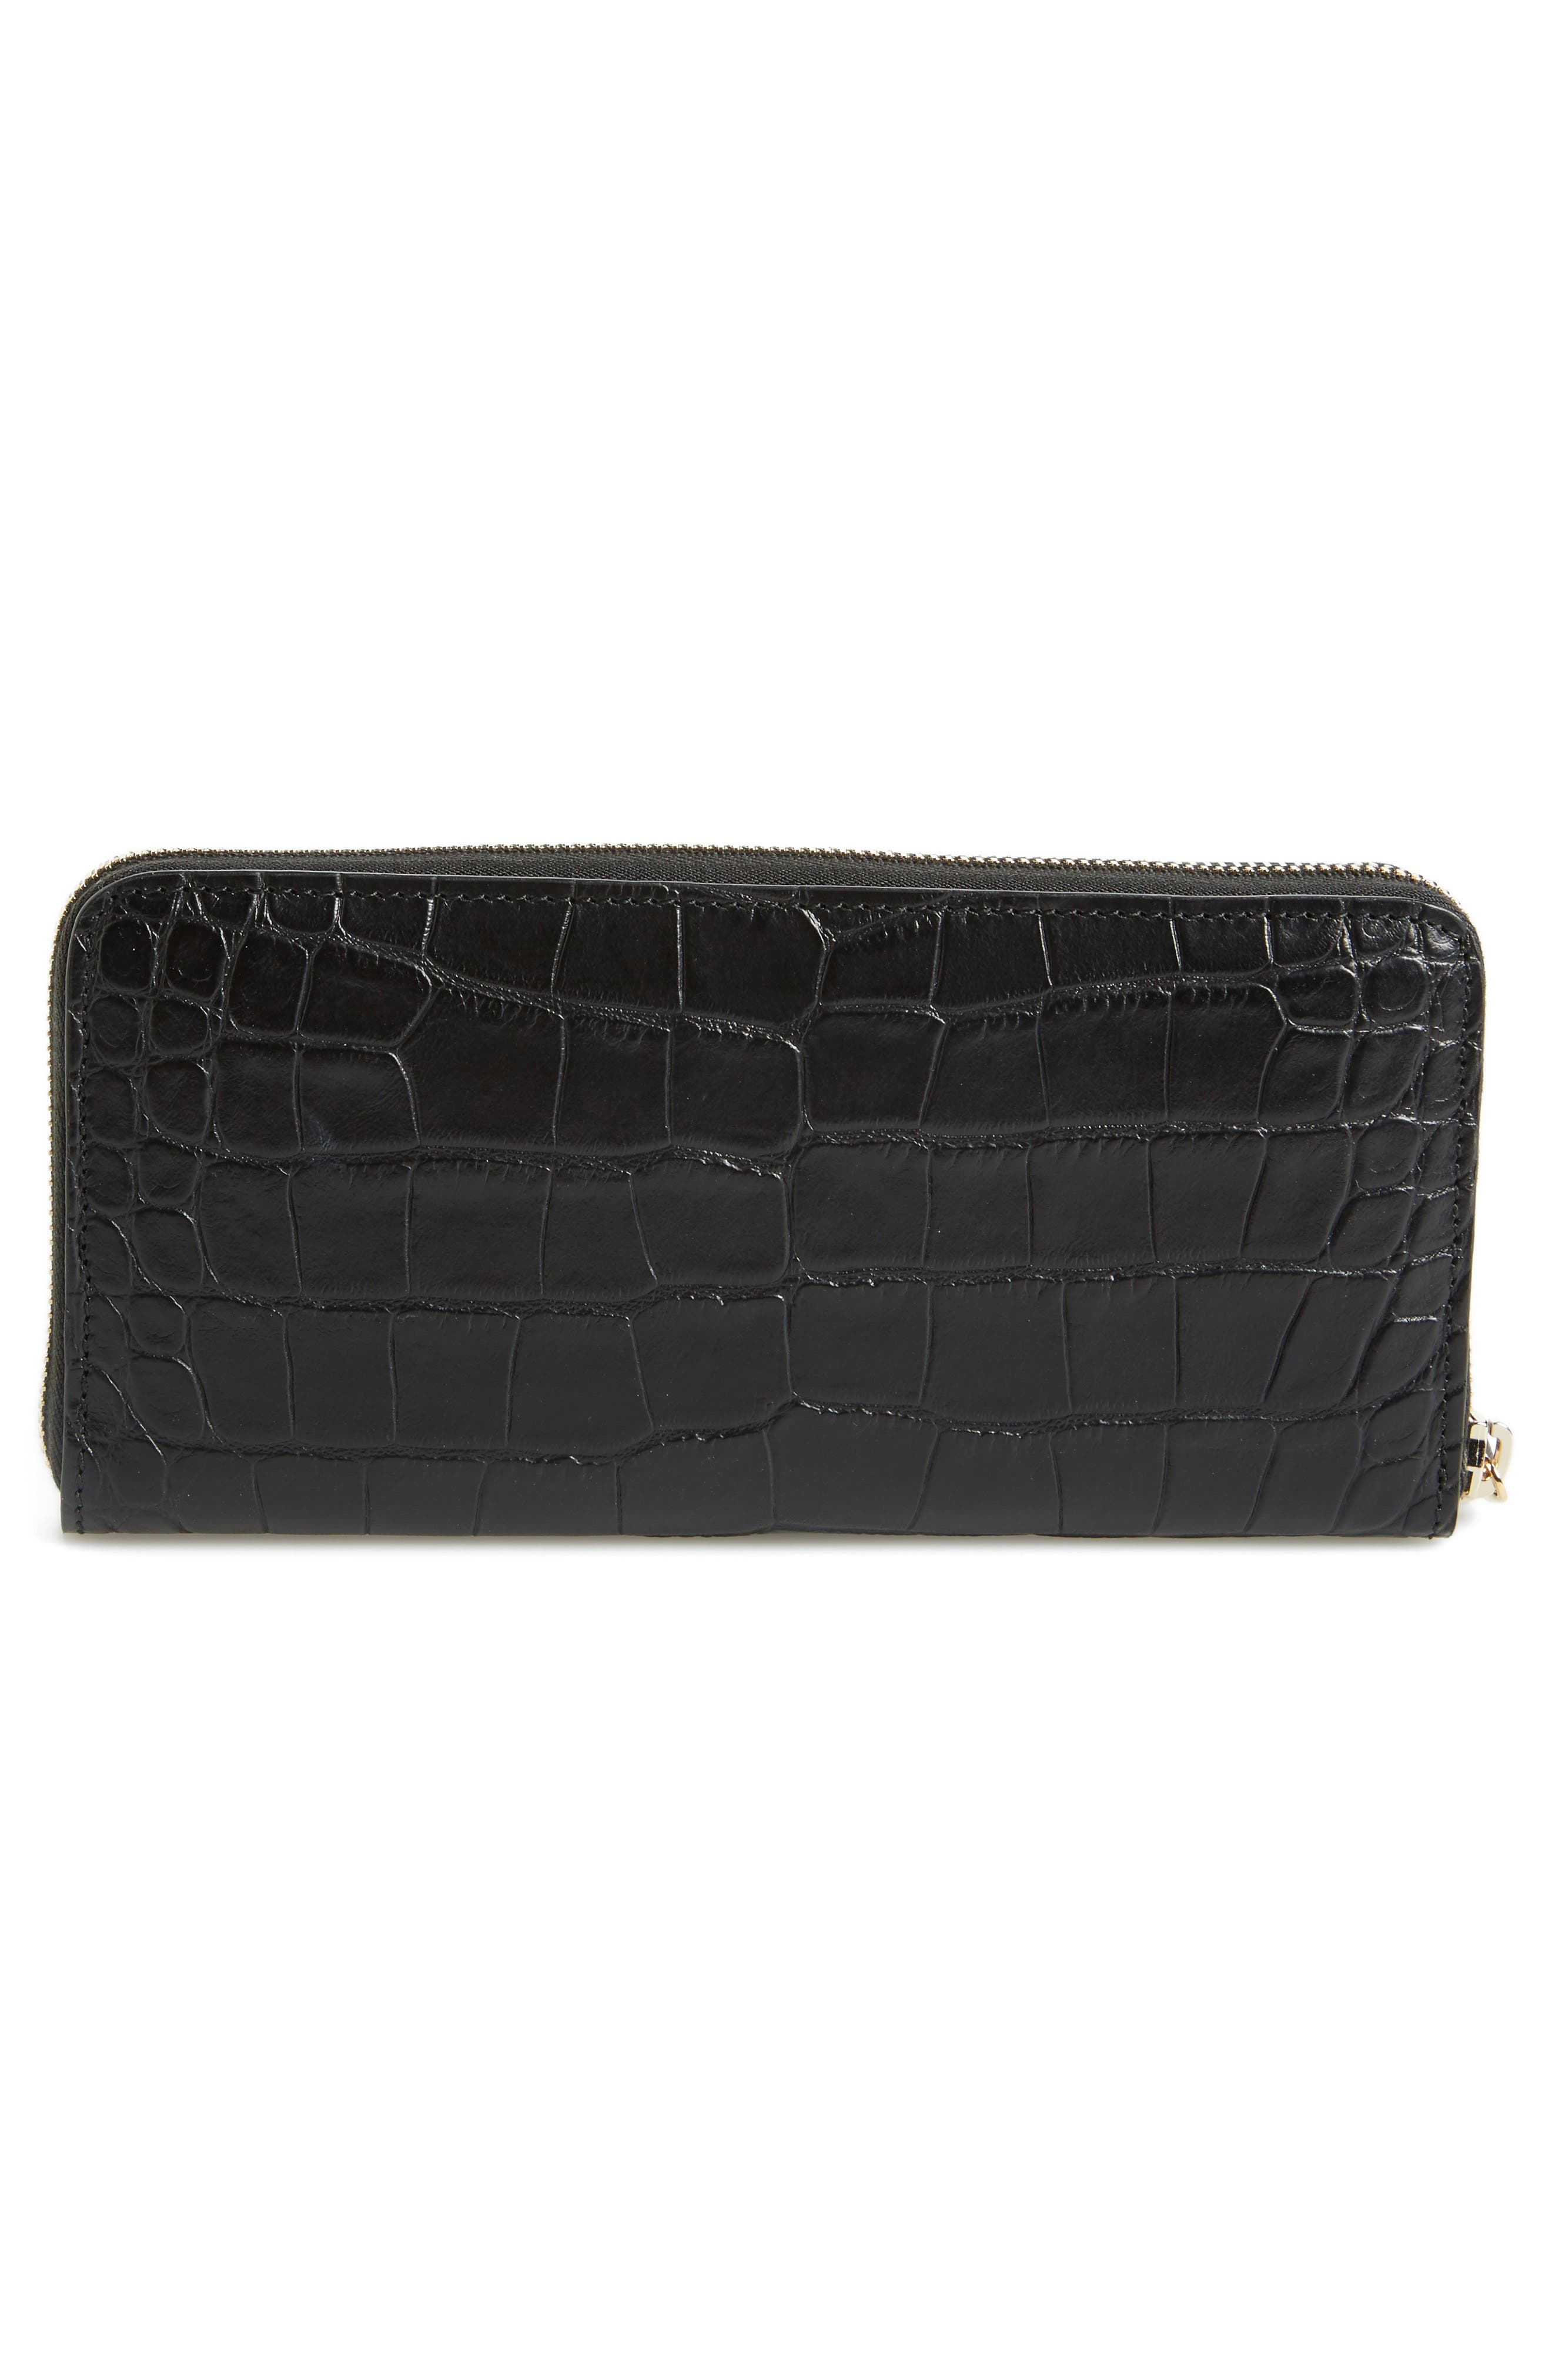 Croc-Embossed Leather Zip Around Wallet,                             Alternate thumbnail 4, color,                             Black